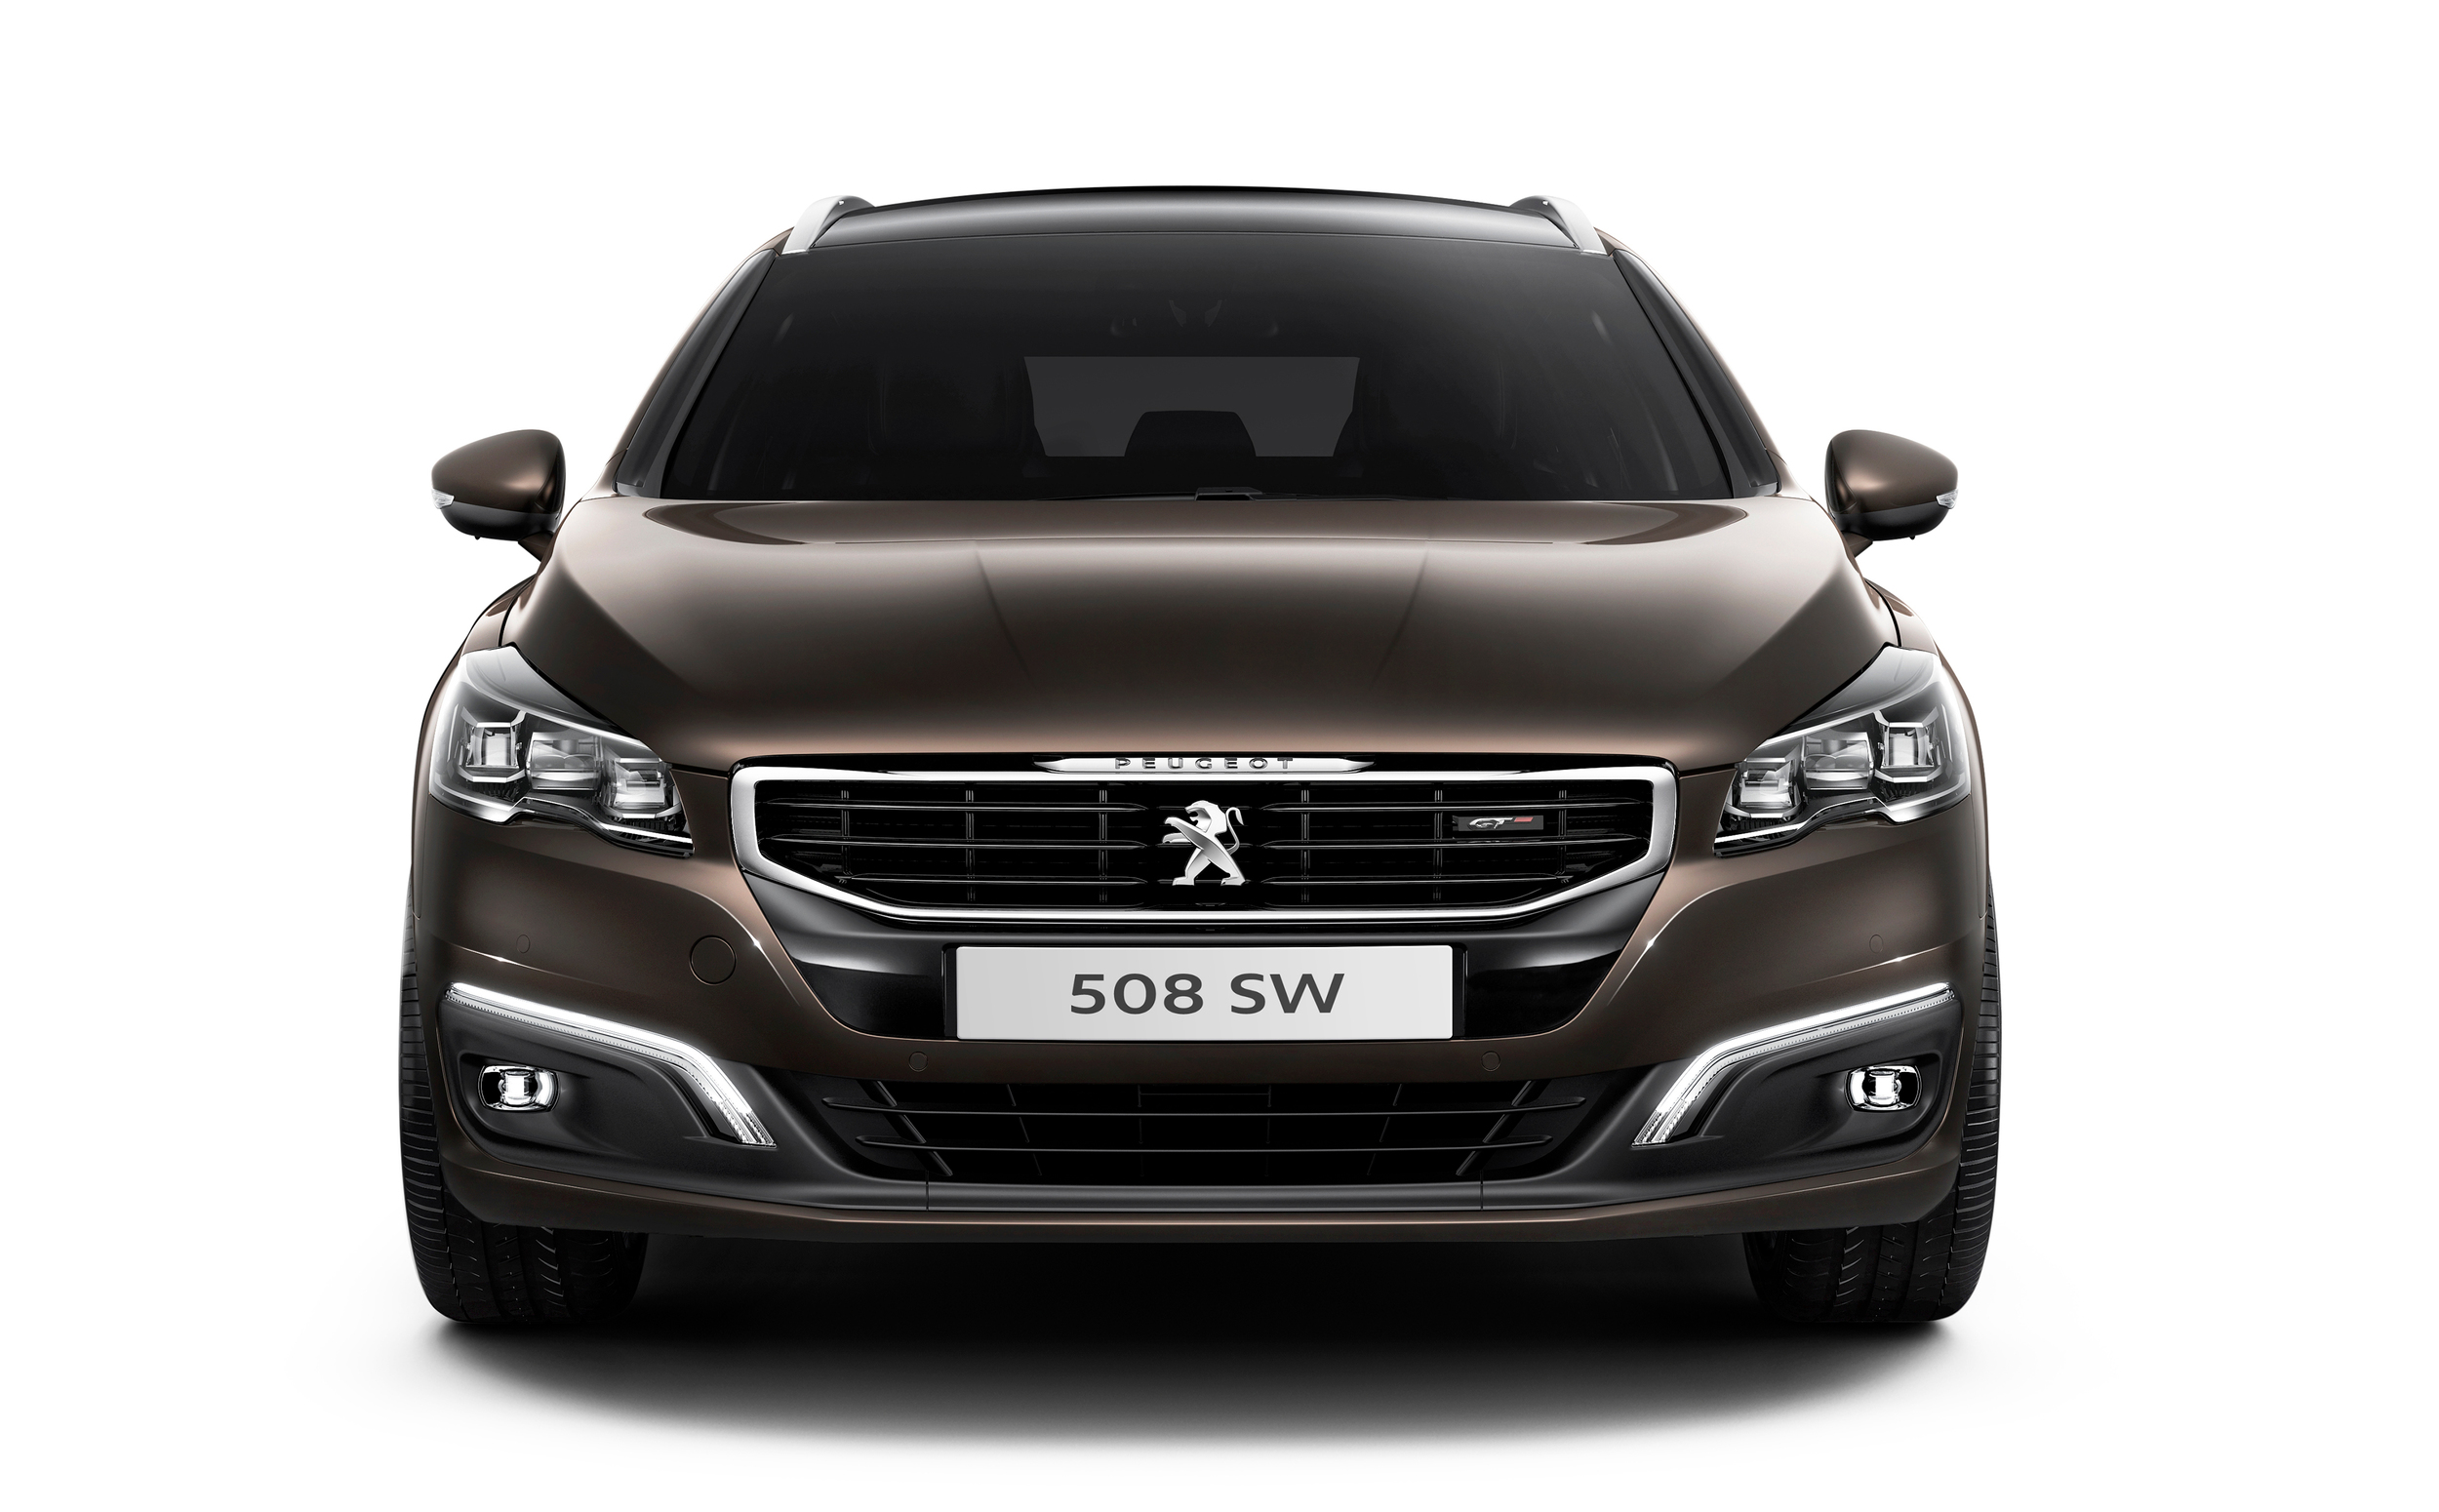 peugeot 508 sw 2014 precios motores equipamientos. Black Bedroom Furniture Sets. Home Design Ideas